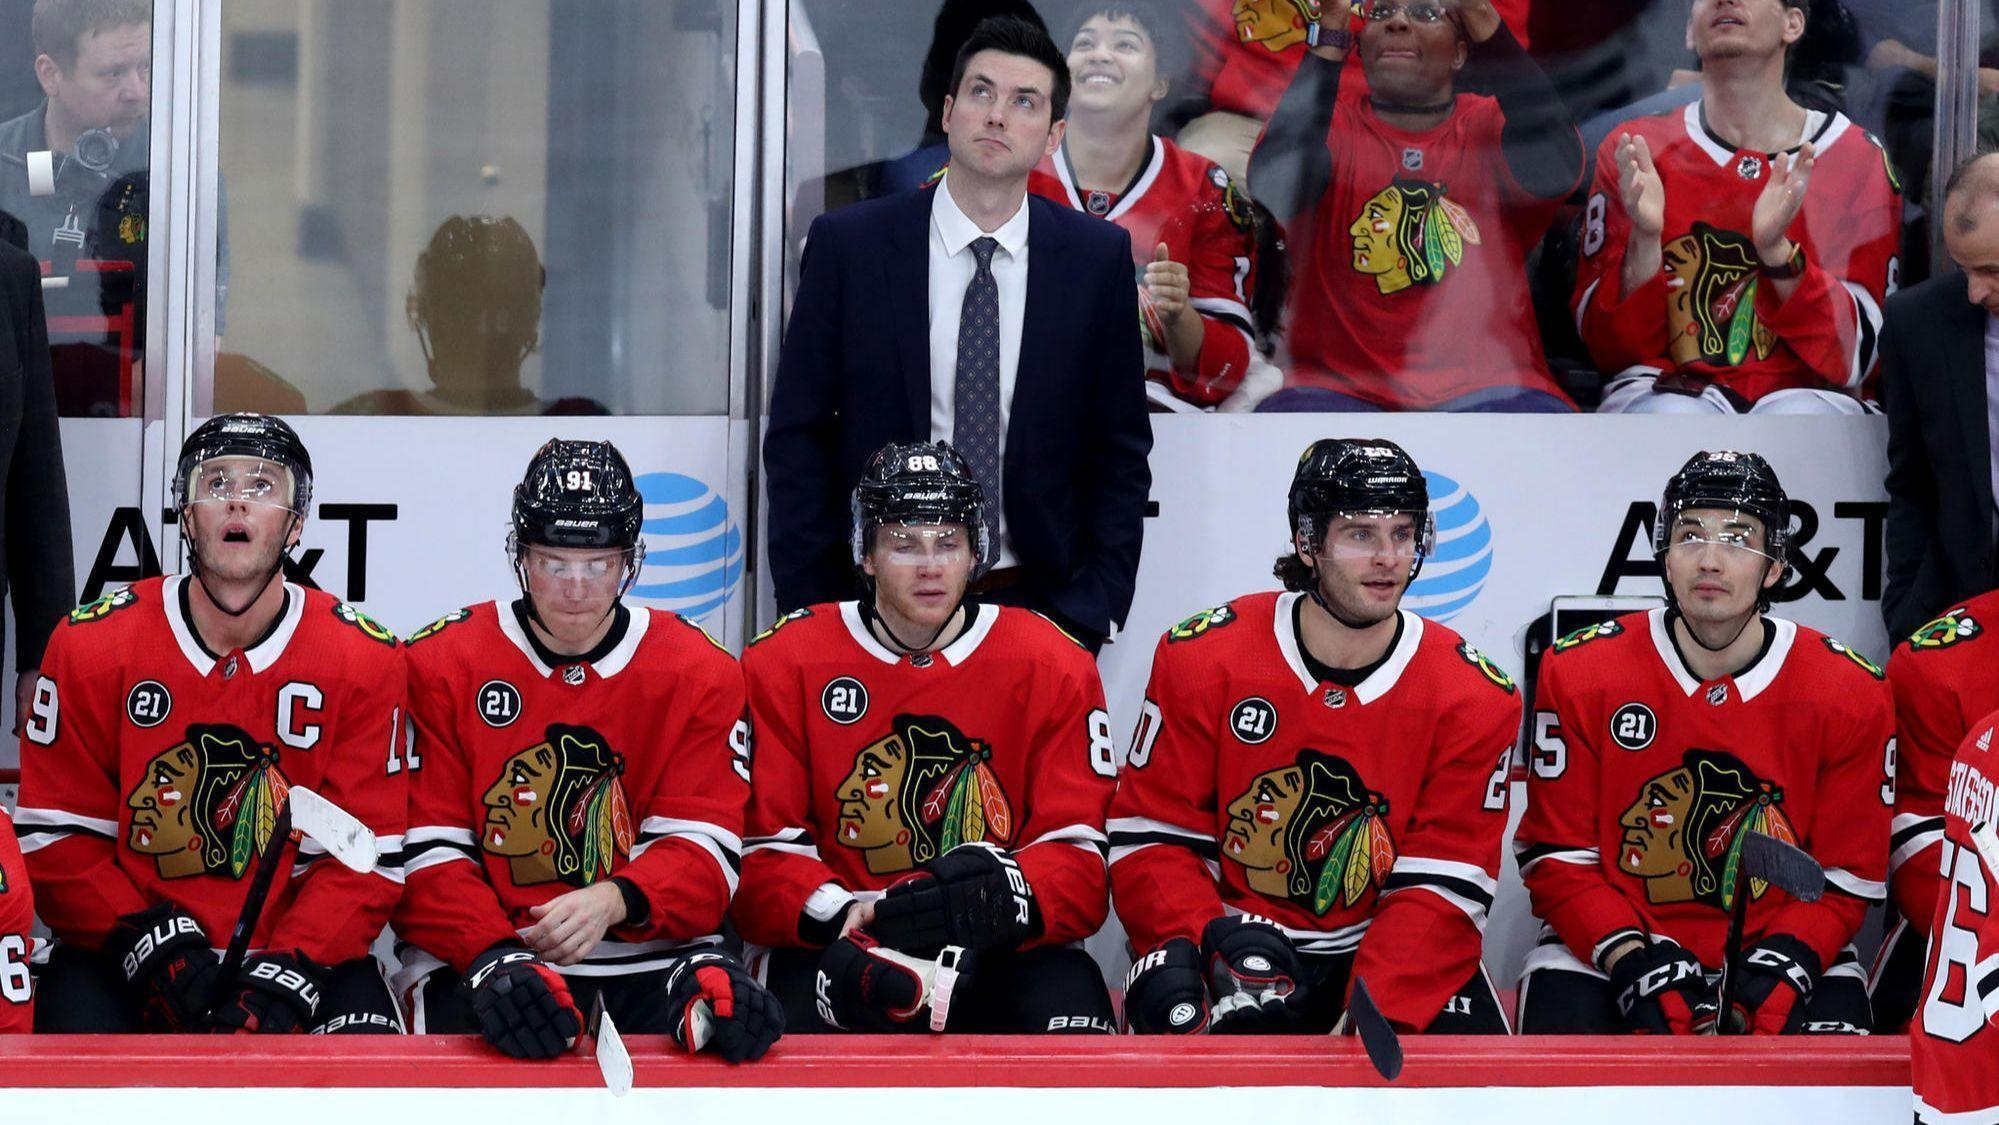 Blackhawks' playoff hopes likely to do or die based on their next seven games